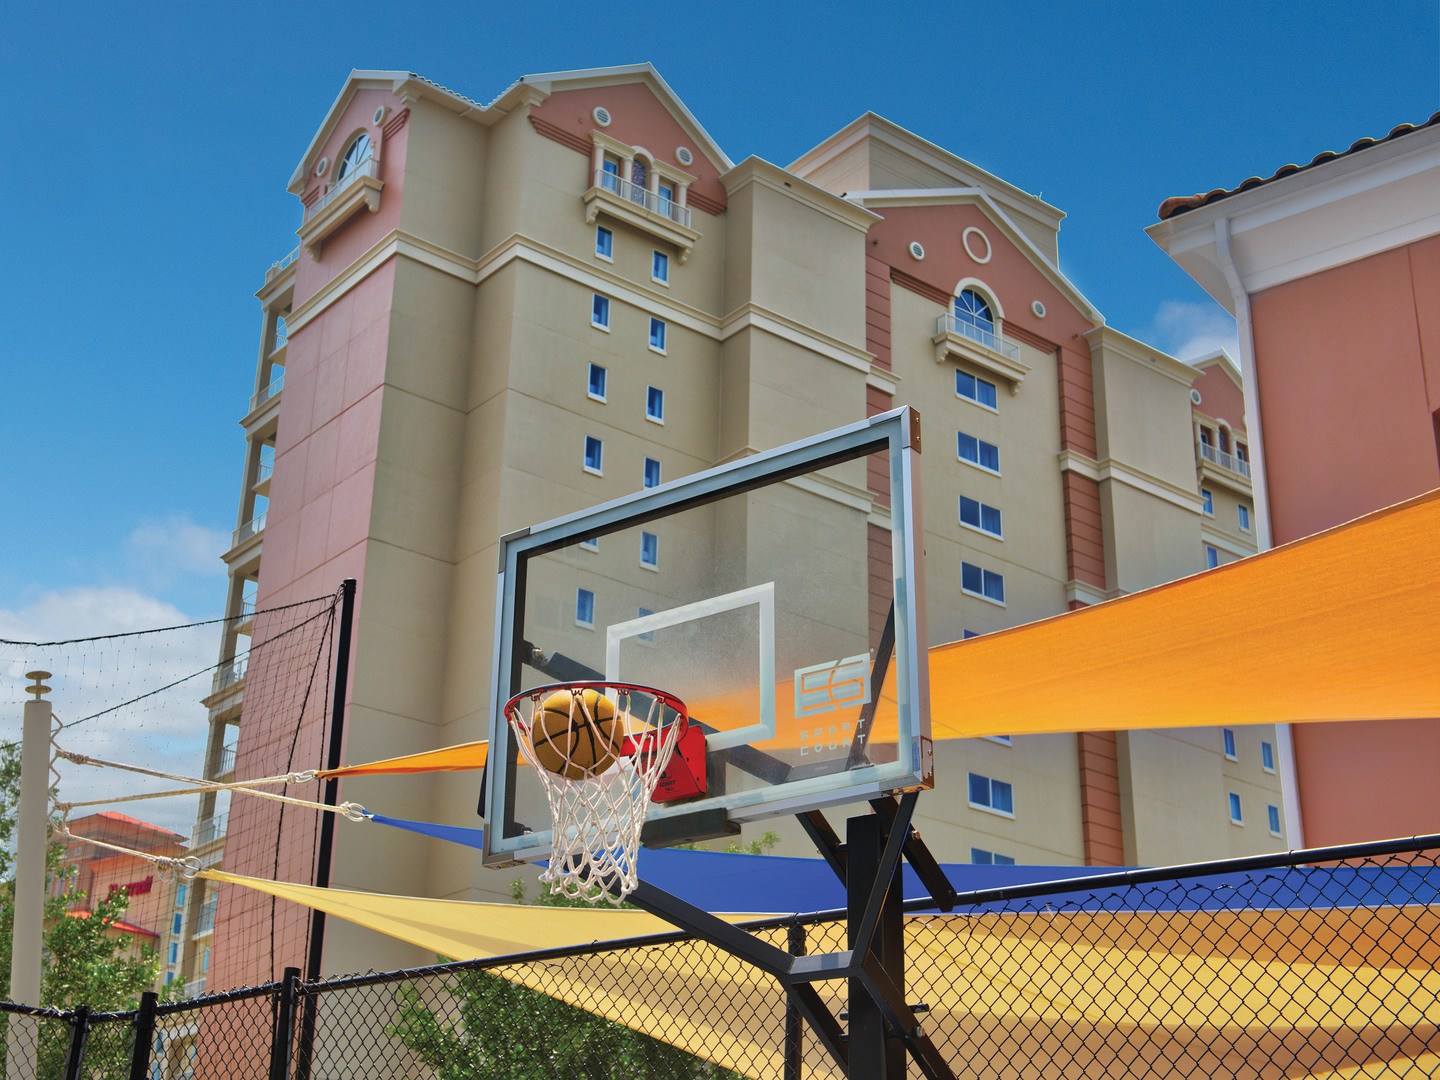 Marriott's OceanWatch Sports Court. Marriott's OceanWatch is located in Myrtle Beach, South Carolina United States.